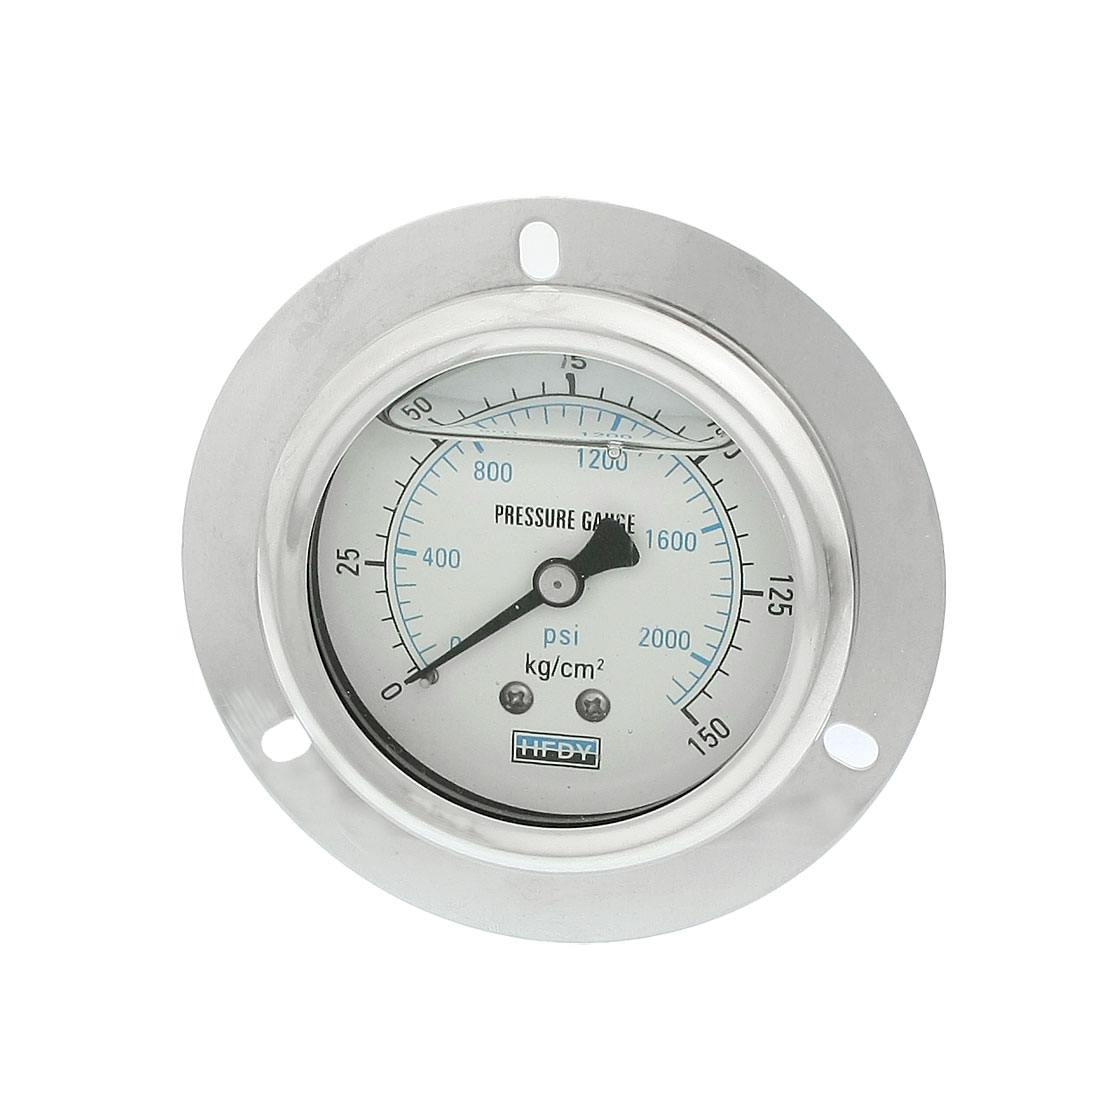 "1/4""PT Axis 0-2000psi 150kg/cm2 Y-60 Model Oil Filled Pressure Gauge"